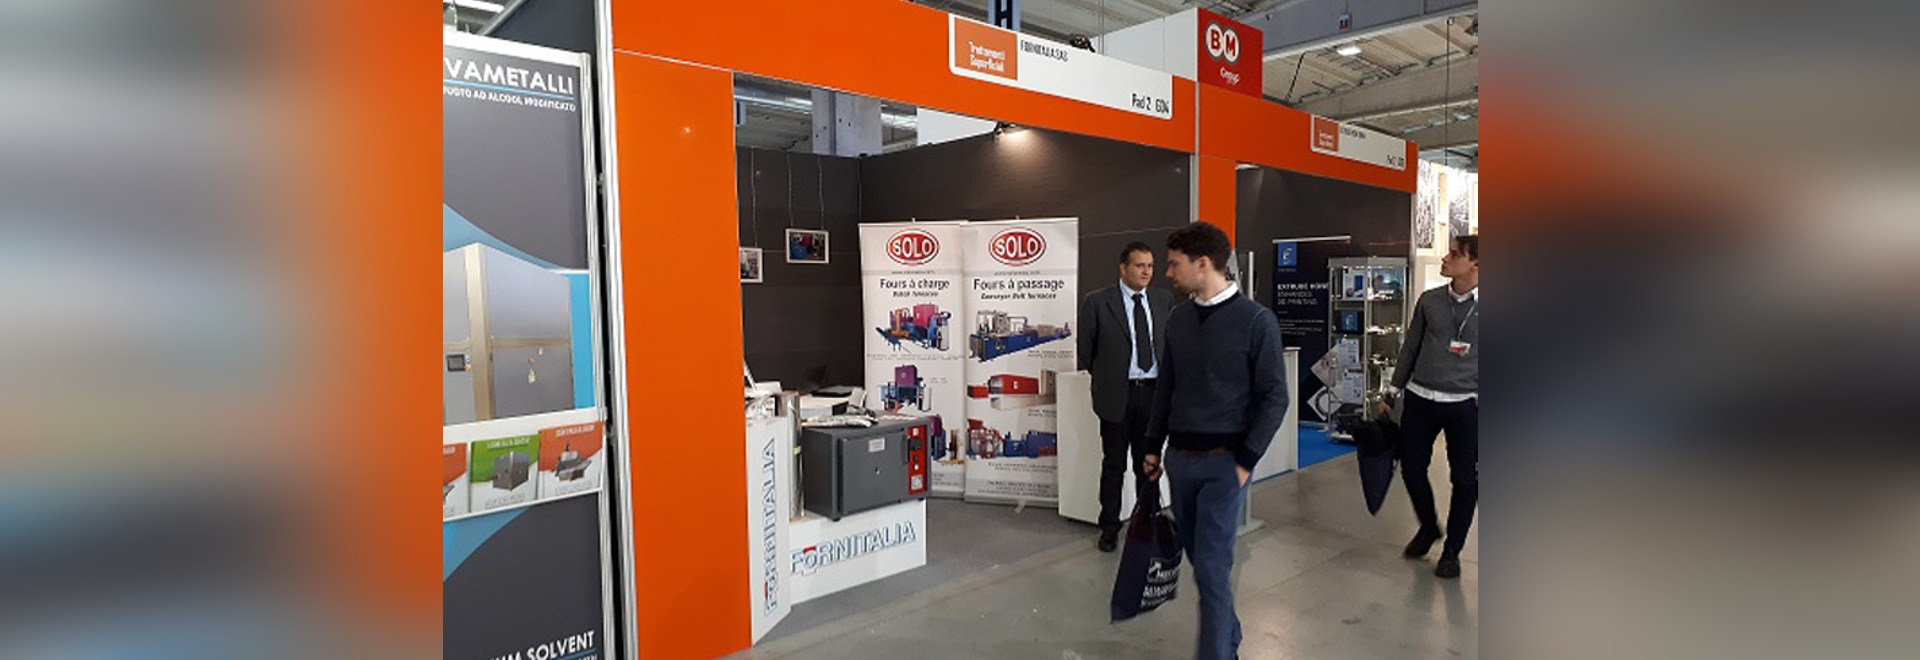 SOLO Swiss participation at the exhibition MECSPE 2018, 22-24 March, Parma, Italy